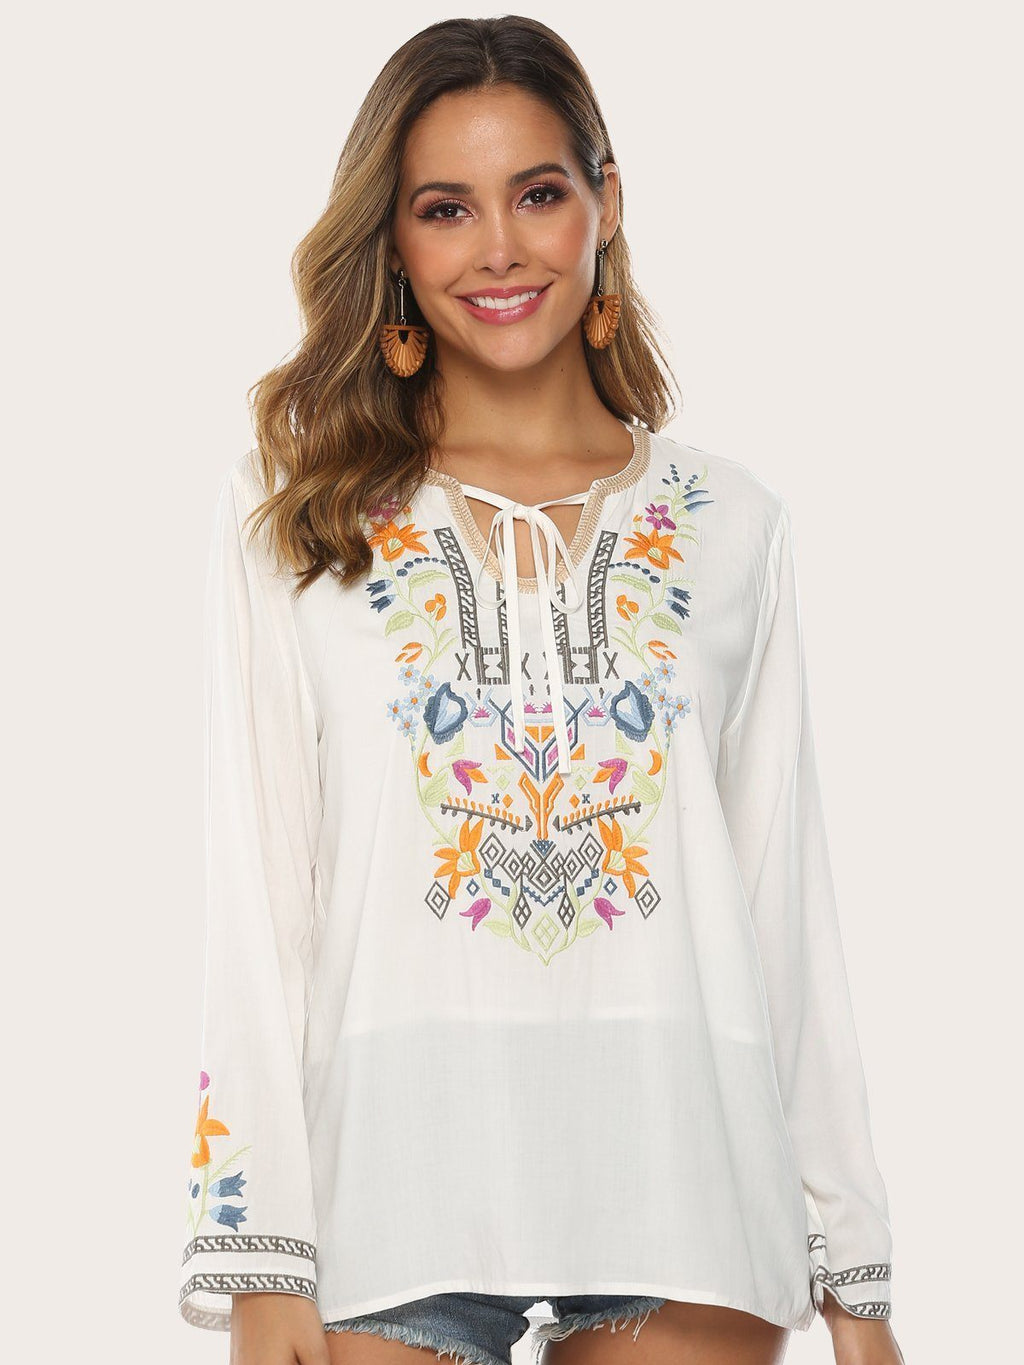 Bohemian Embroidered Floral V Neck Long Sleeve Blouses Best Gifts for the Season & Christmas - Luckinchic - LuckinChic.com